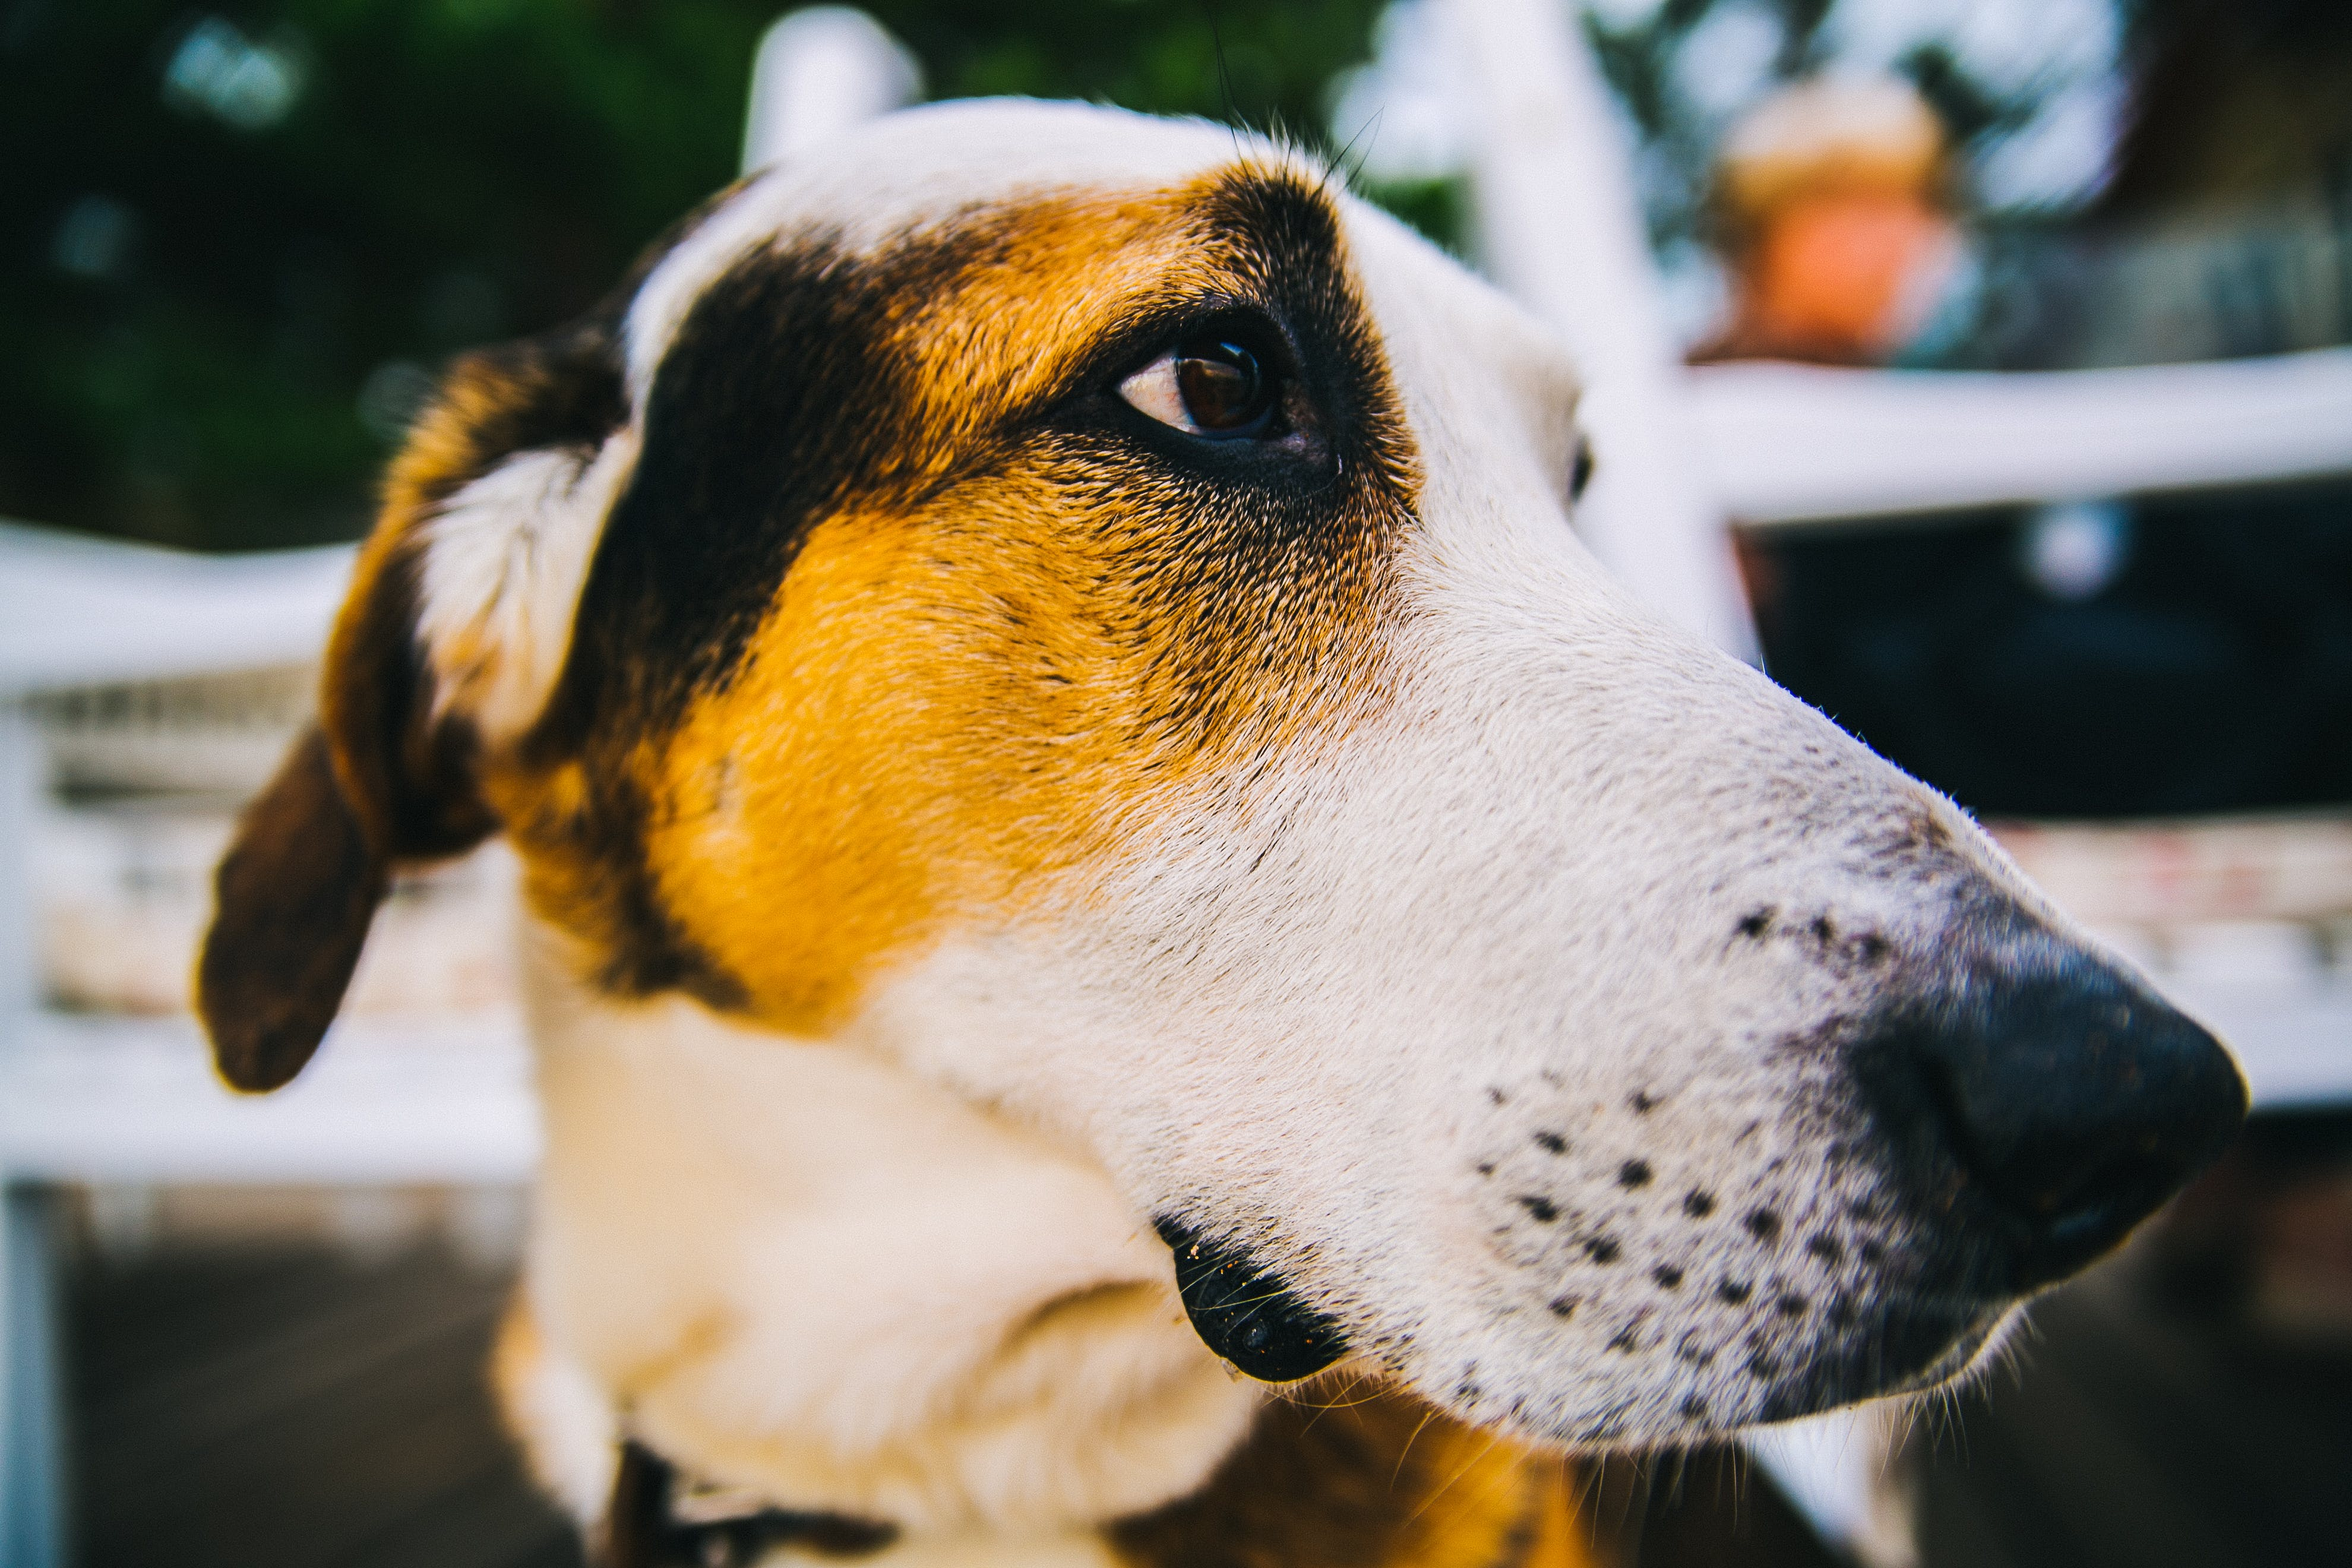 Tricolor Short-coated Dog in Close Up Photography